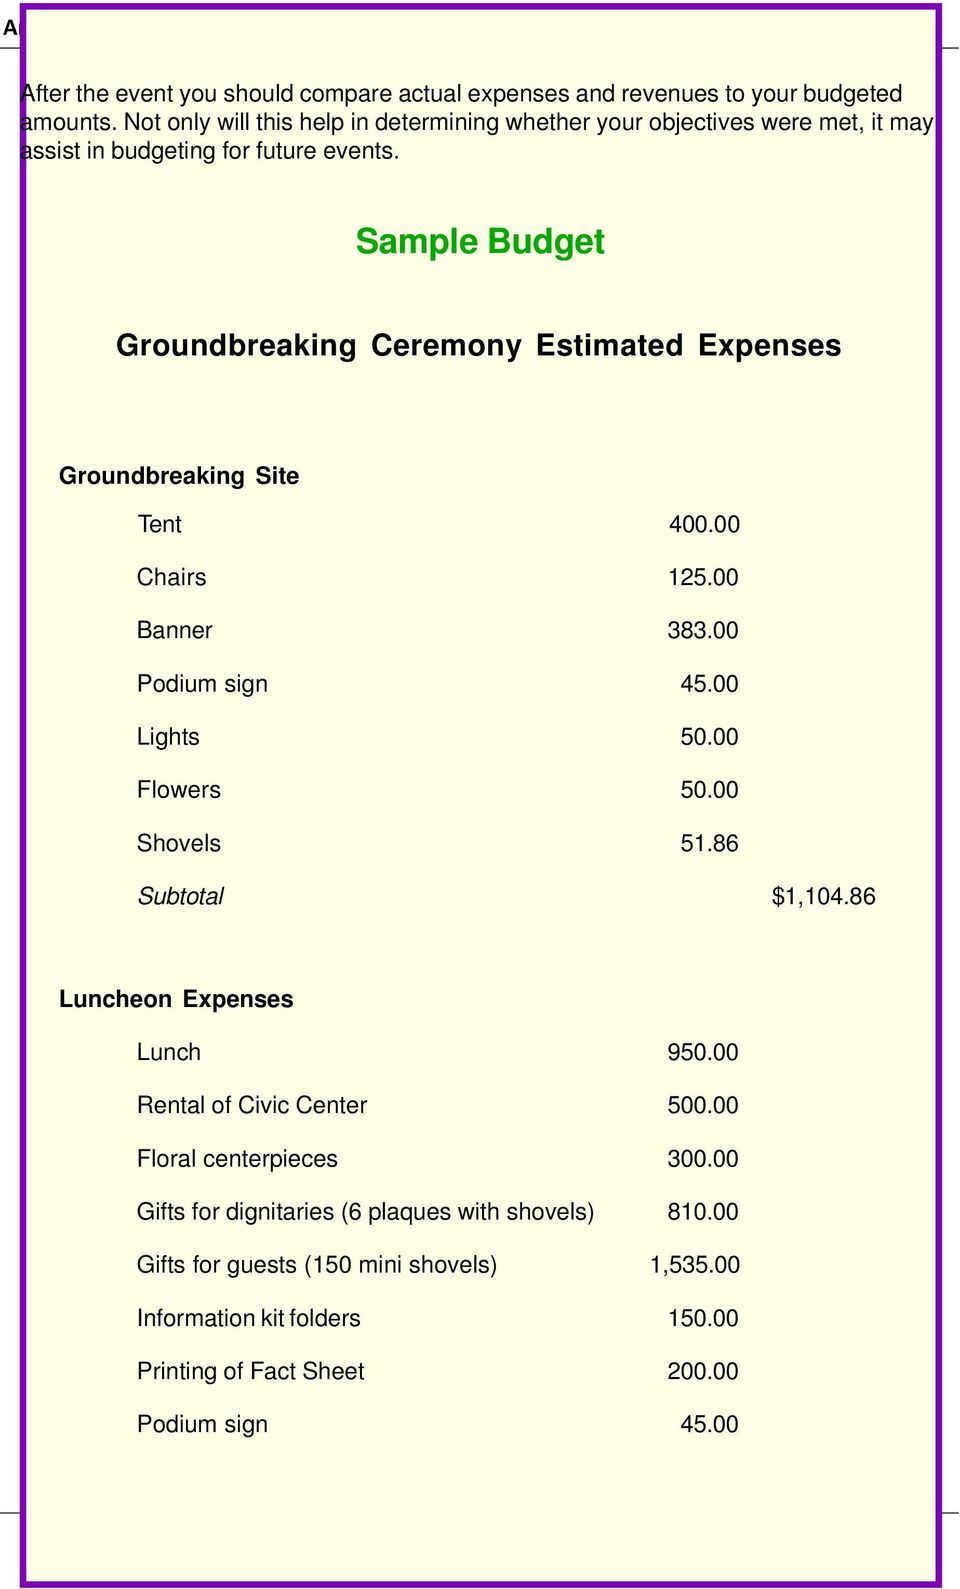 Sample Budget Groundbreaking Ceremony Estimated Expenses Groundbreaking Site Tent 400.00 Chairs 125.00 Banner 383.00 Podium sign 45.00 Lights 50.00 Flowers 50.